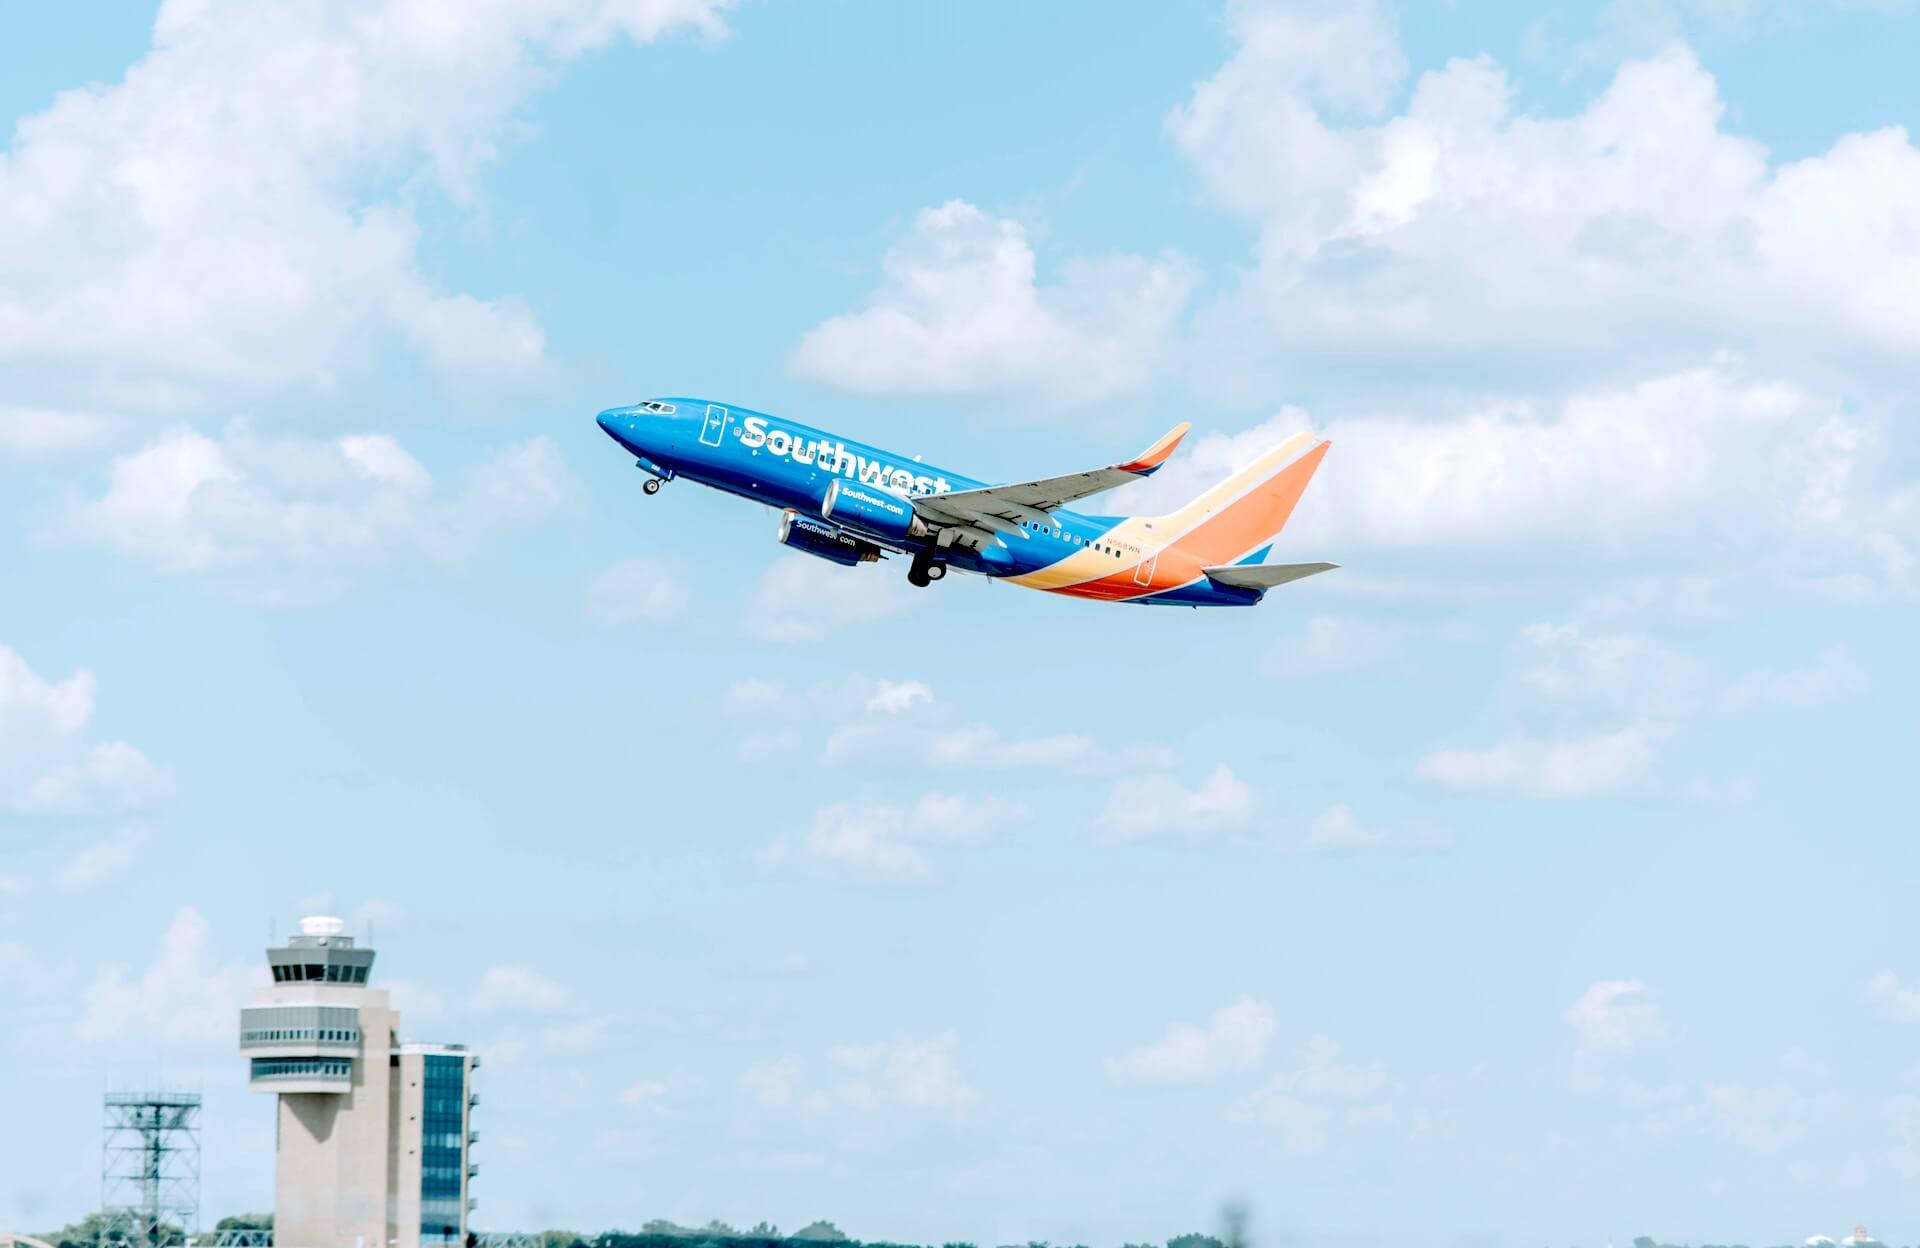 Southwest Airlines Boeing 737 Take Off